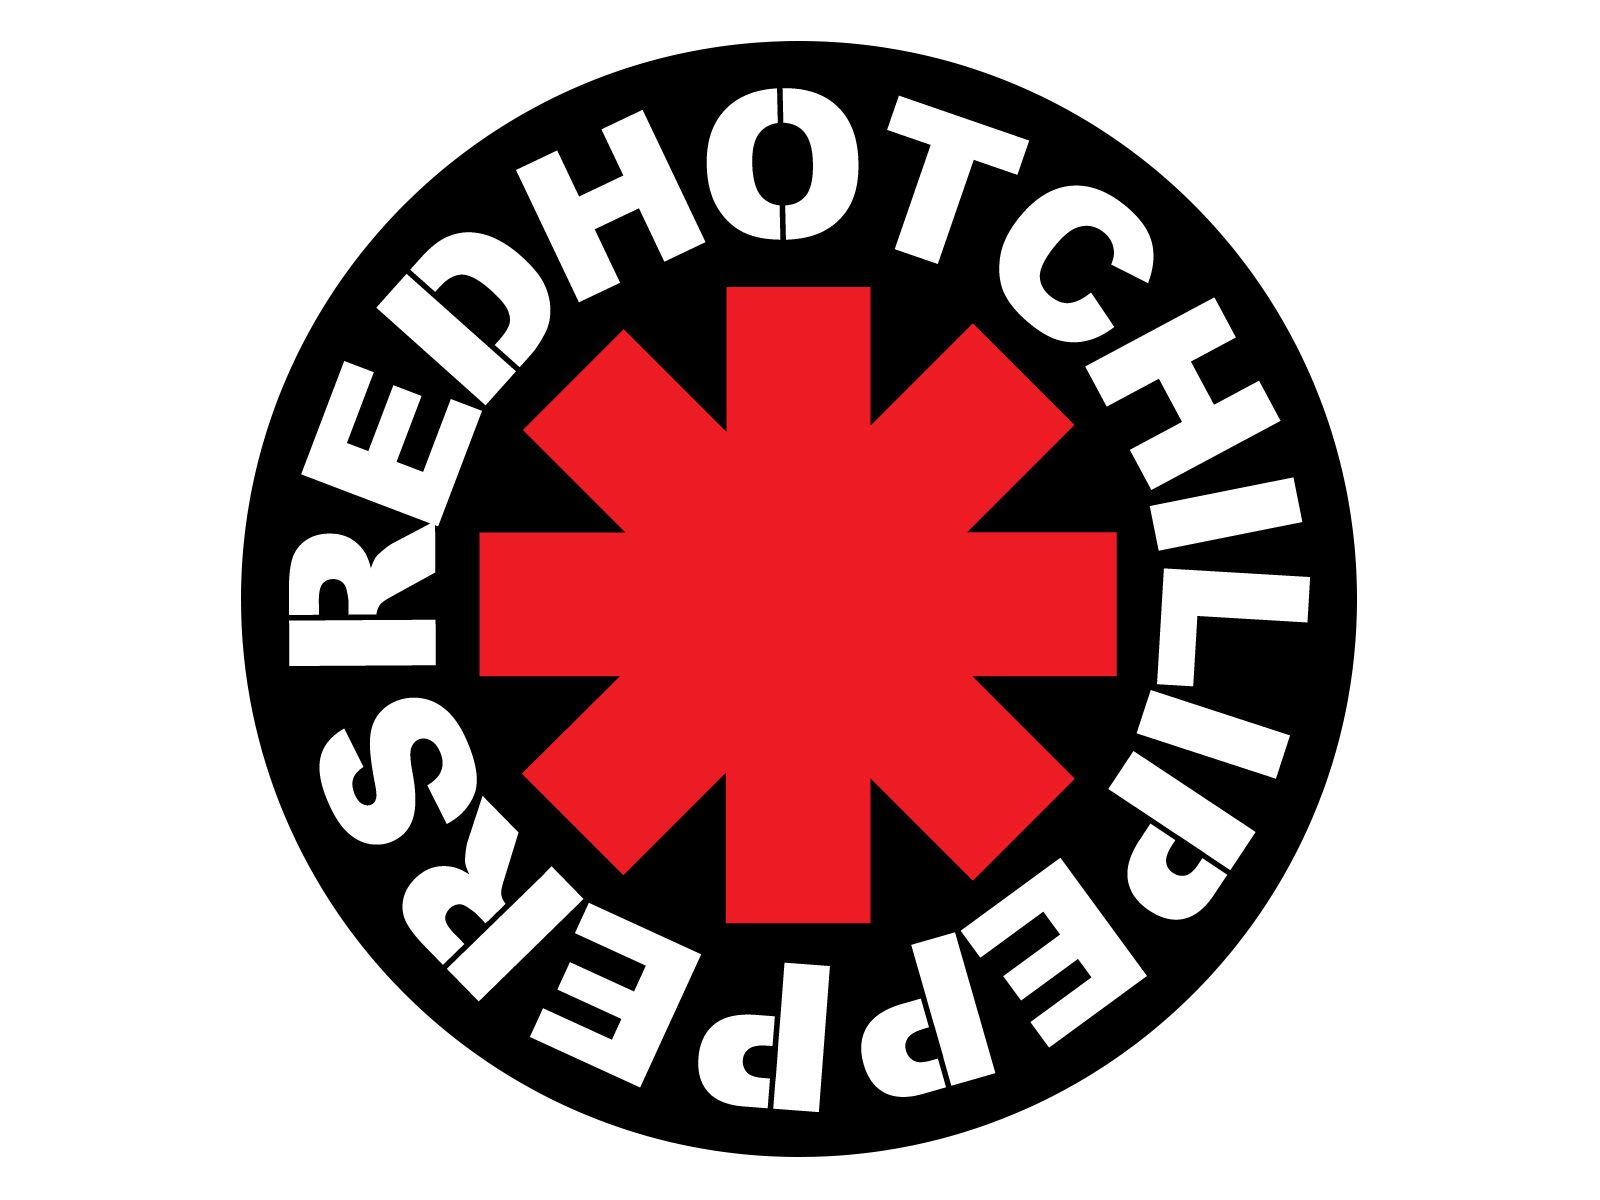 The Red Hot Chili Pepper logo.